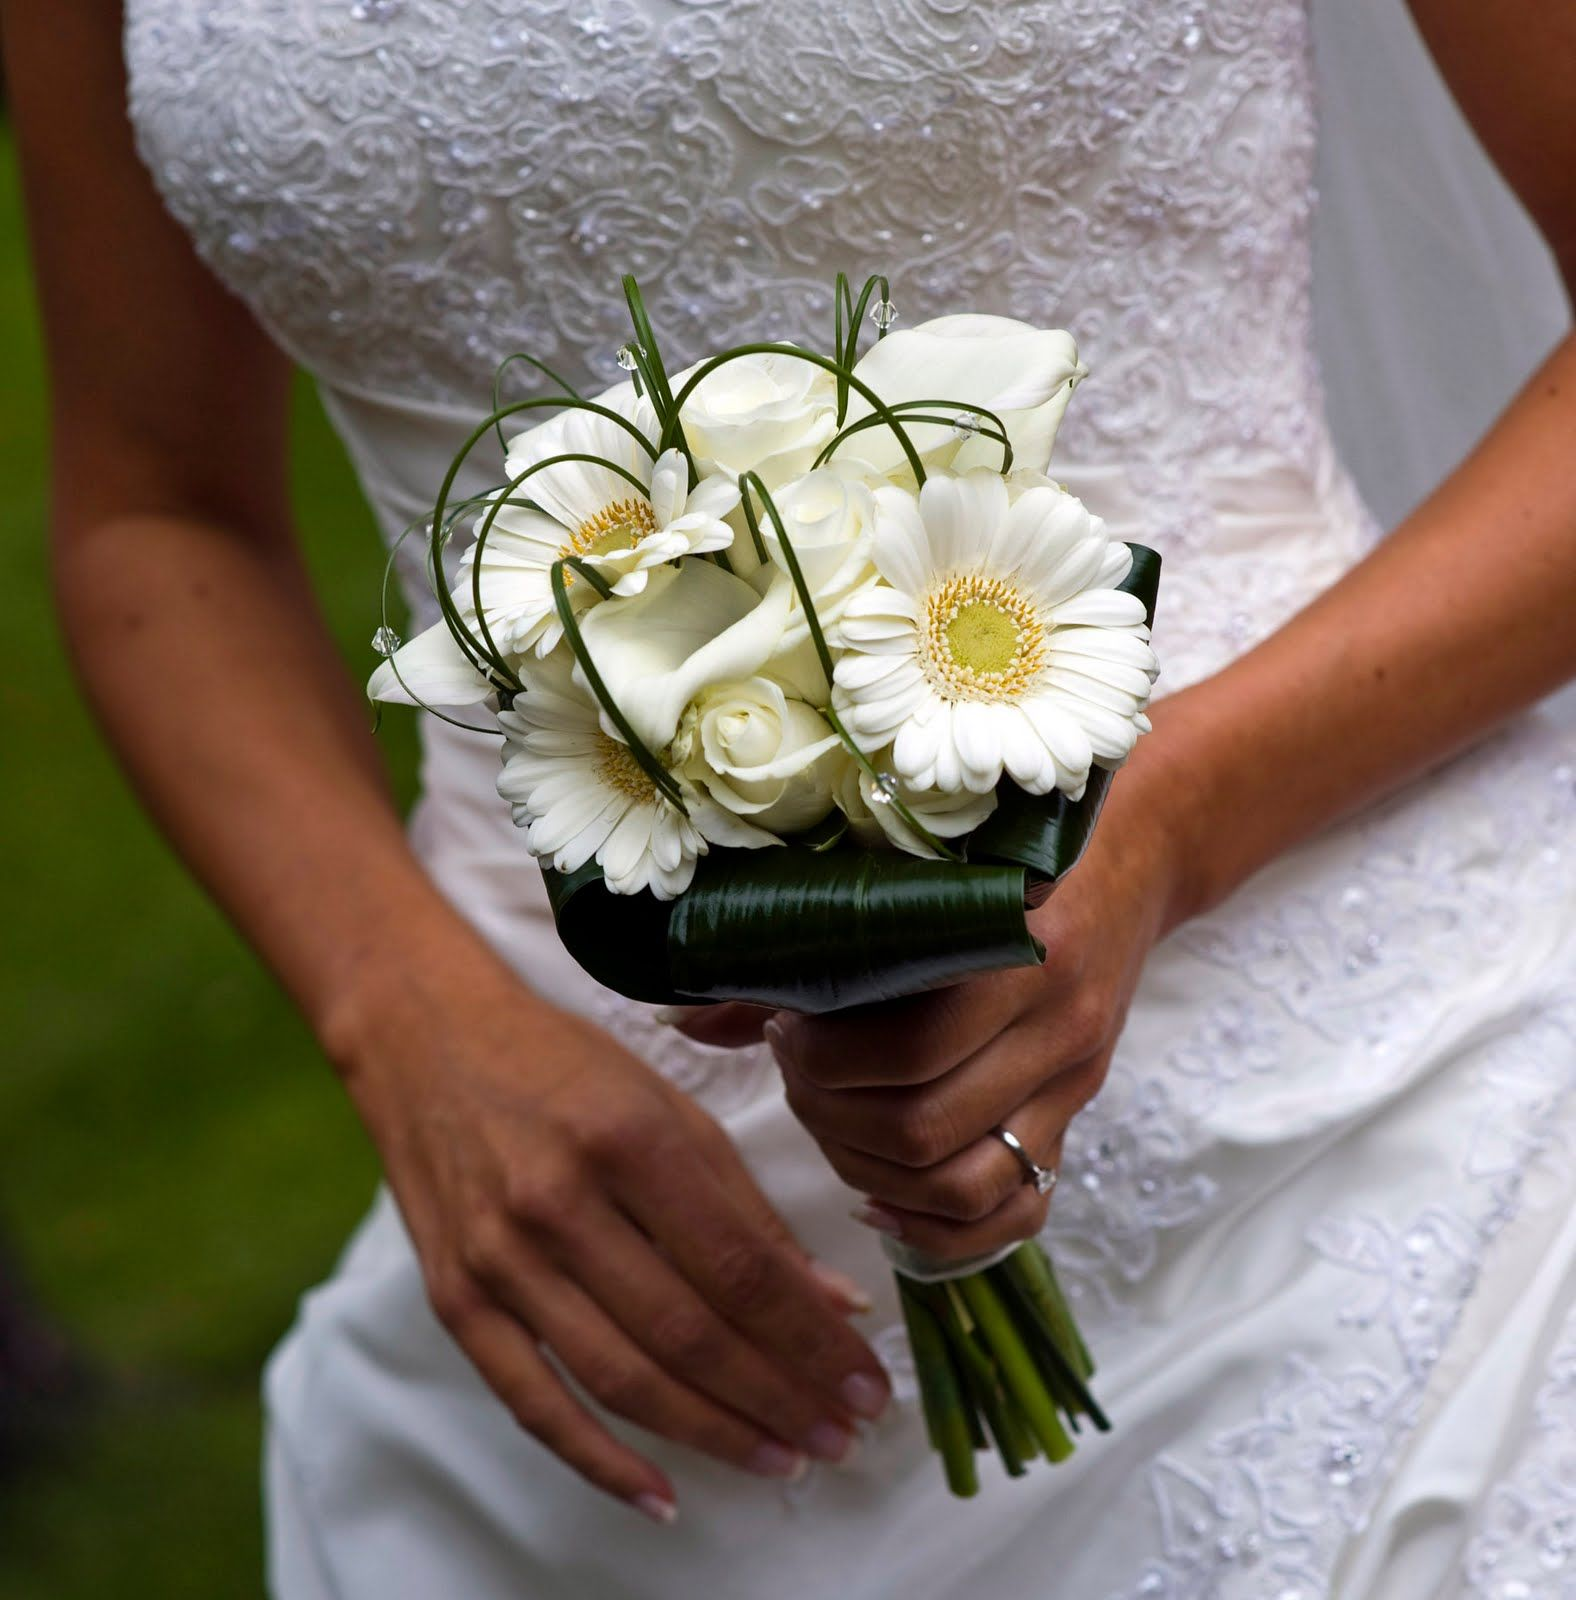 Small Simple Wedding Bouquets : Small calla lilly bridal boquets the bridesmaid s bouquets were simple linear lily